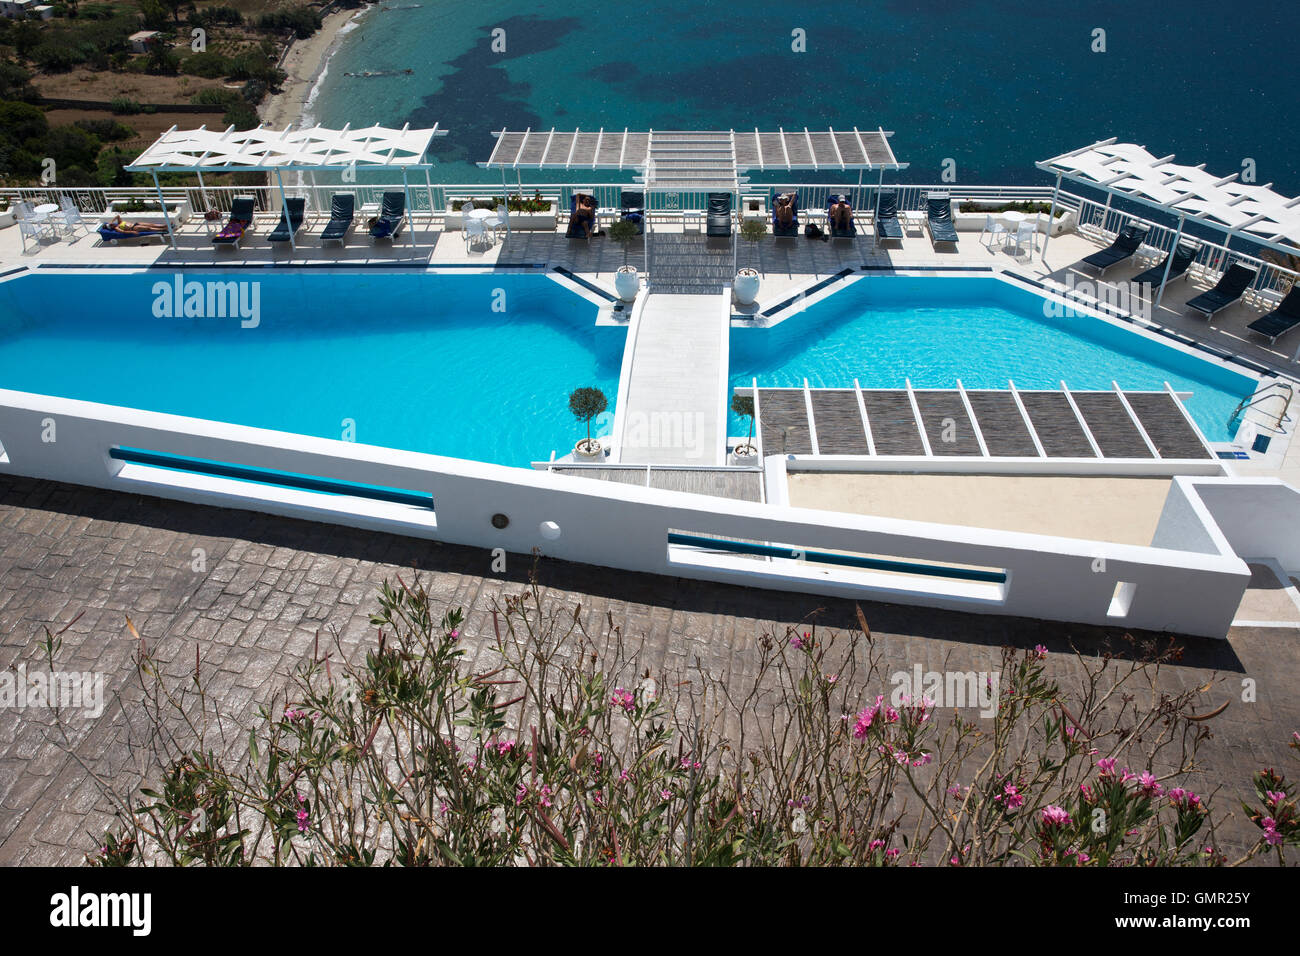 An empty swimming pool at a hotel in Greece showing the downturn in the tourist business - Stock Image